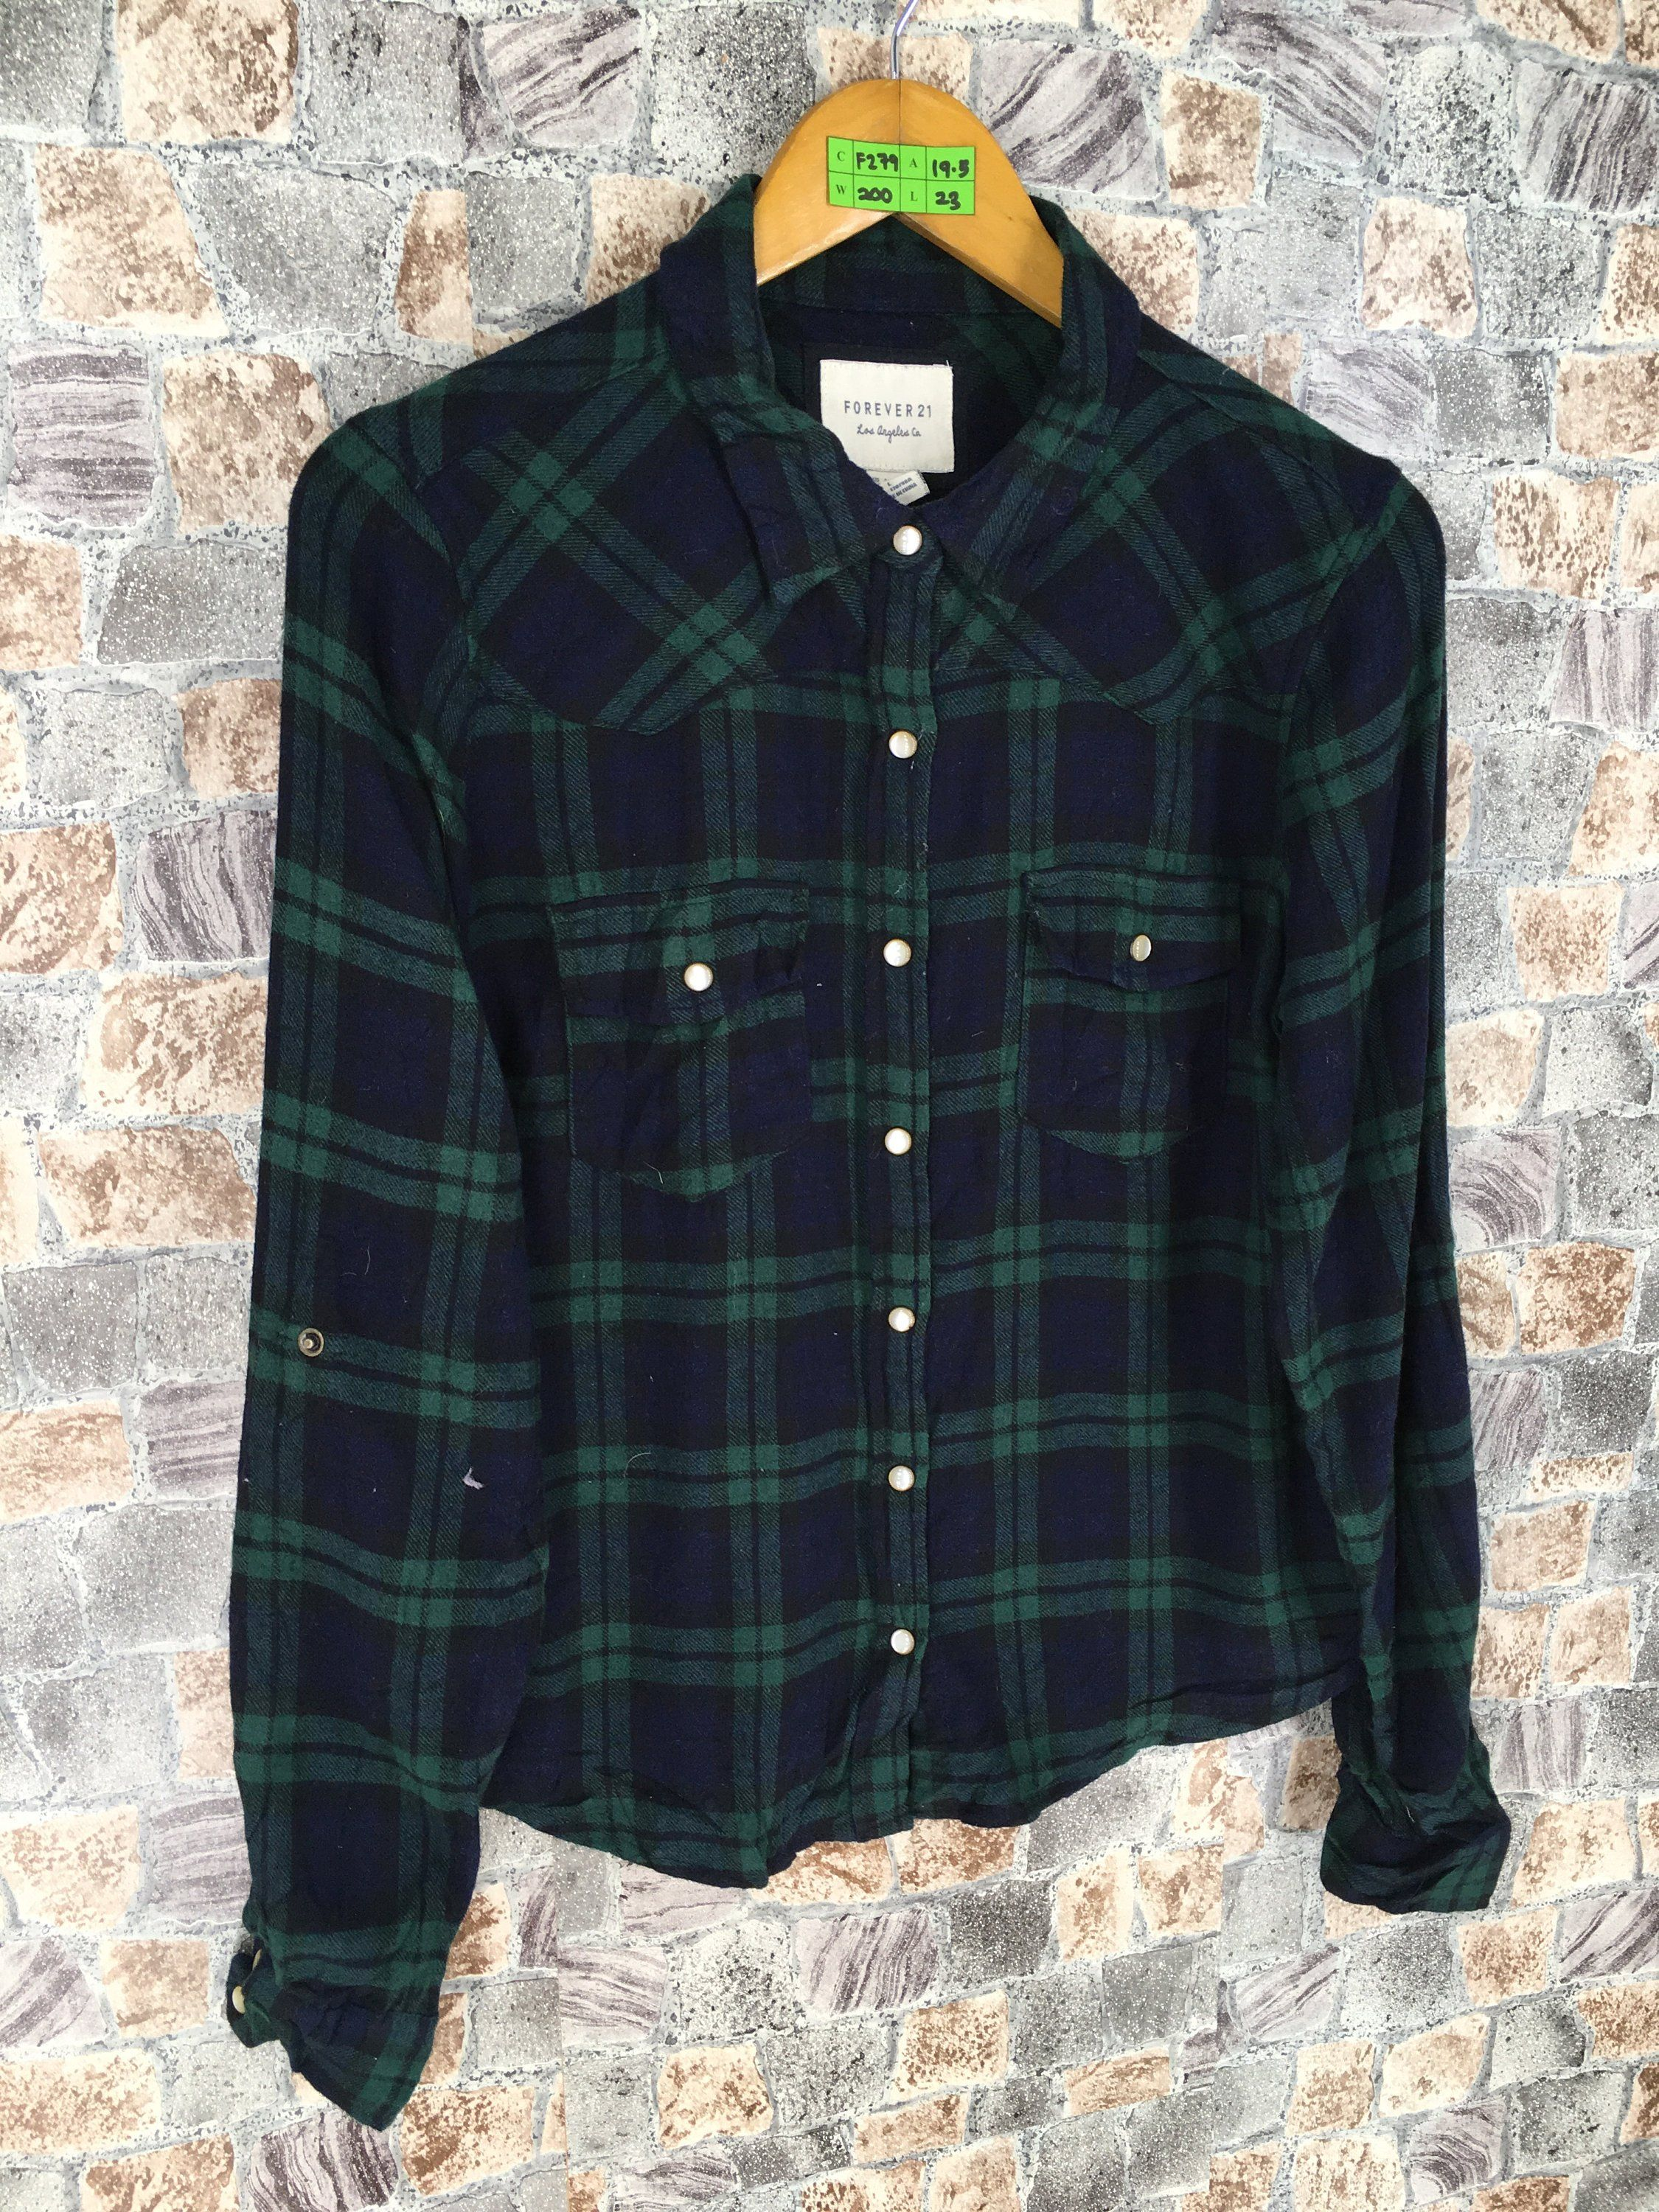 36b80933a #clothing #women #blouse #flanneloversized #90sgrungeflannel  #womenflannelshirt #90shipsterflannel #rusticflannel #fallclothing